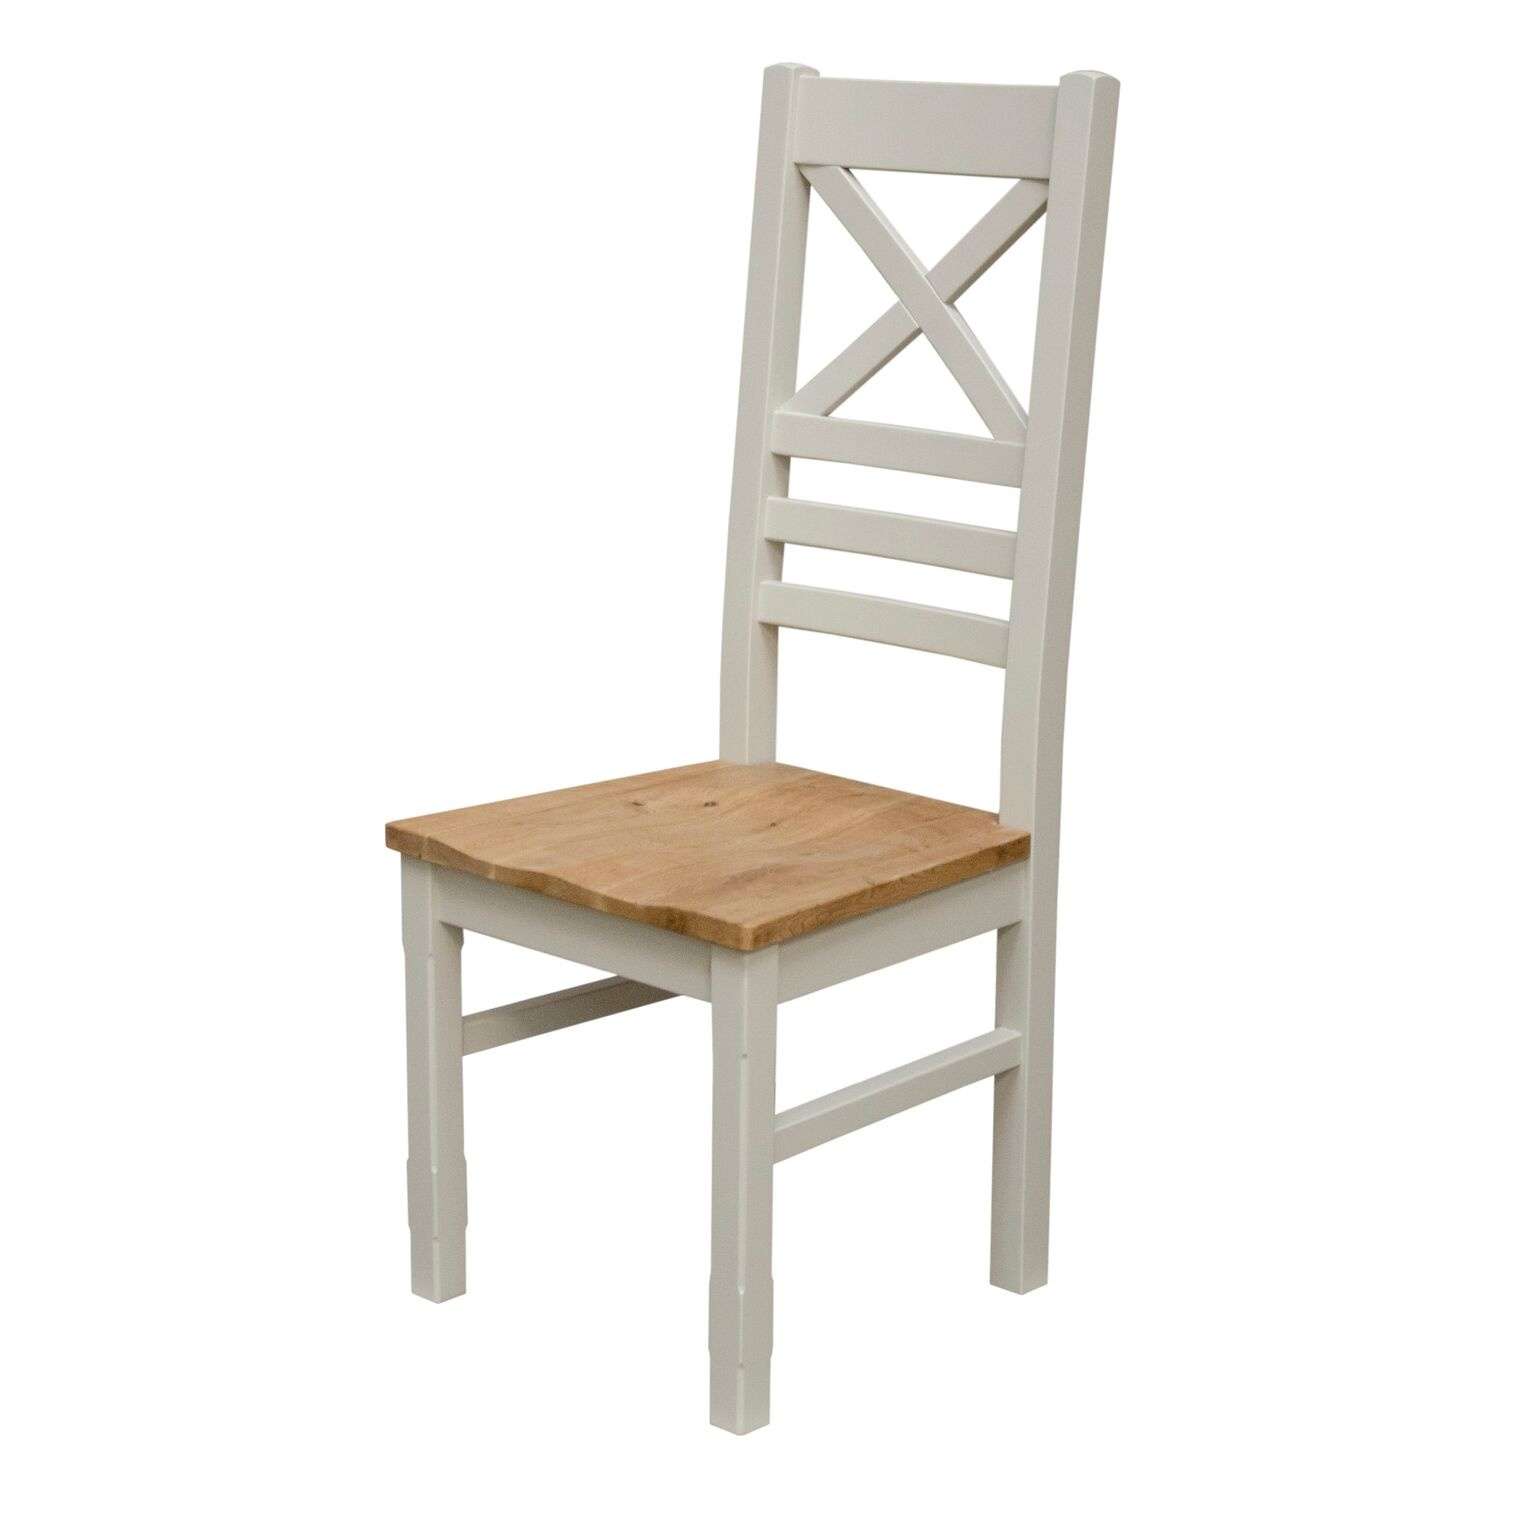 Painted Deluxe Newcross Back Dining Chair - Pair